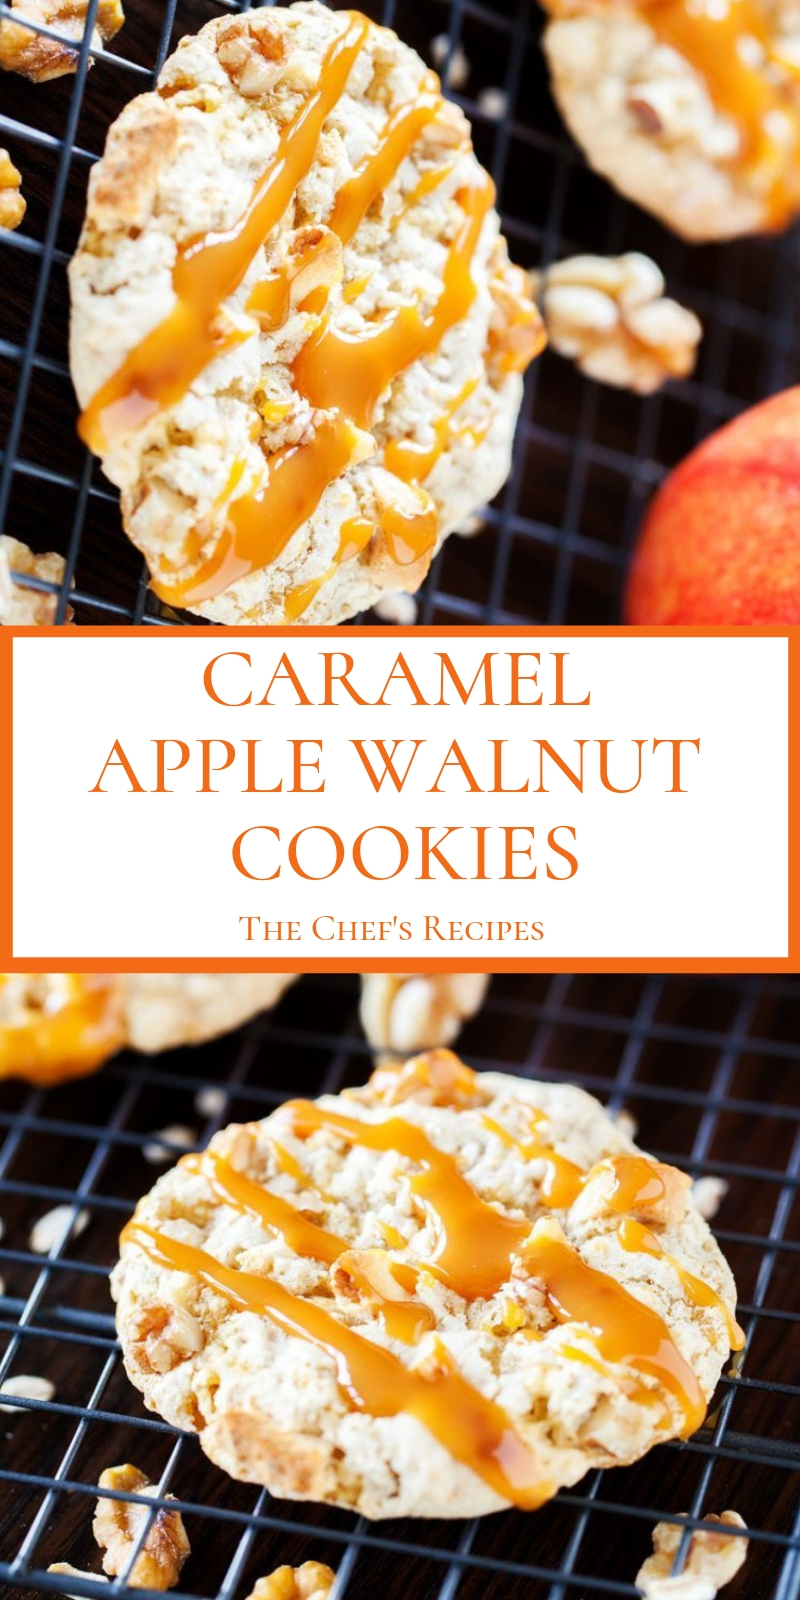 CARAMEL APPLE WALNUT COOKIES